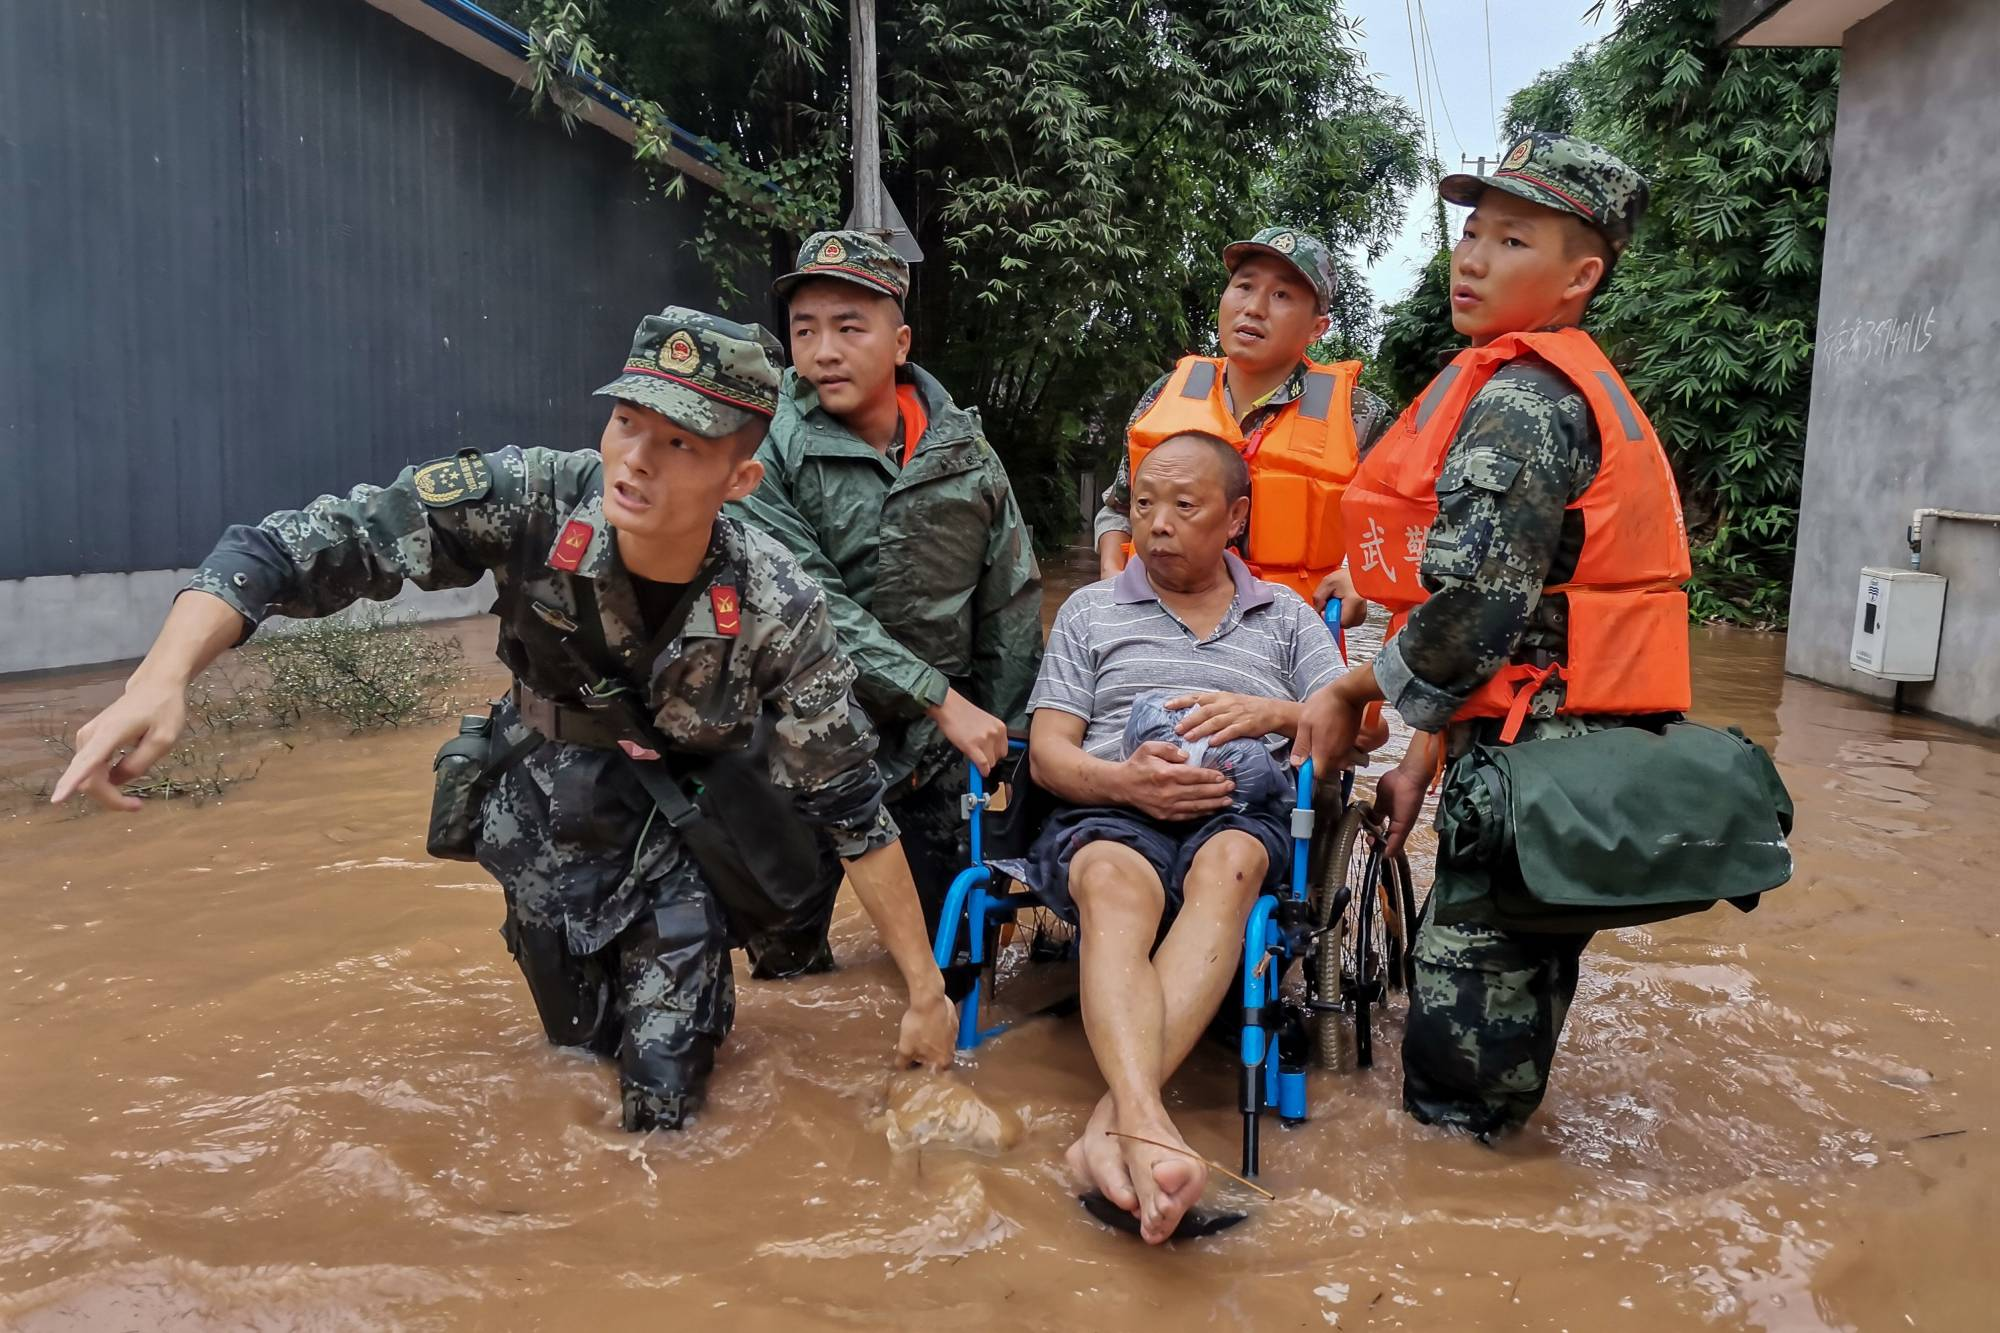 China's paramilitary police officers evacuate a resident on a flooded street in Meishan in Sichuan province. While dams and levees have helped save lives, flooding remains China's biggest natural headache. | AFP-JIJI